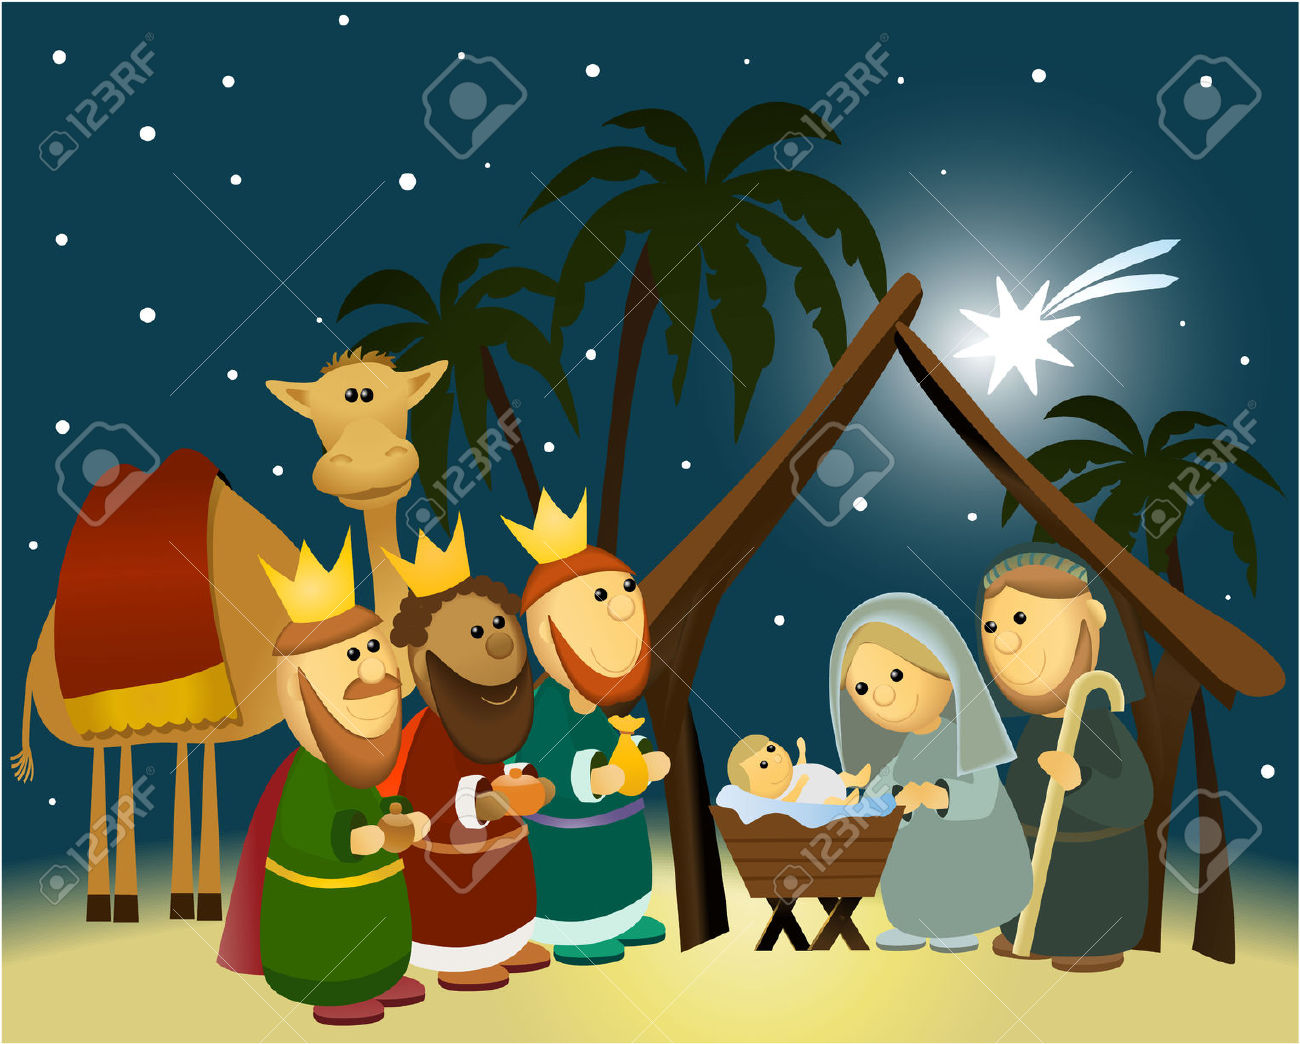 animated nativity scene clipart #4